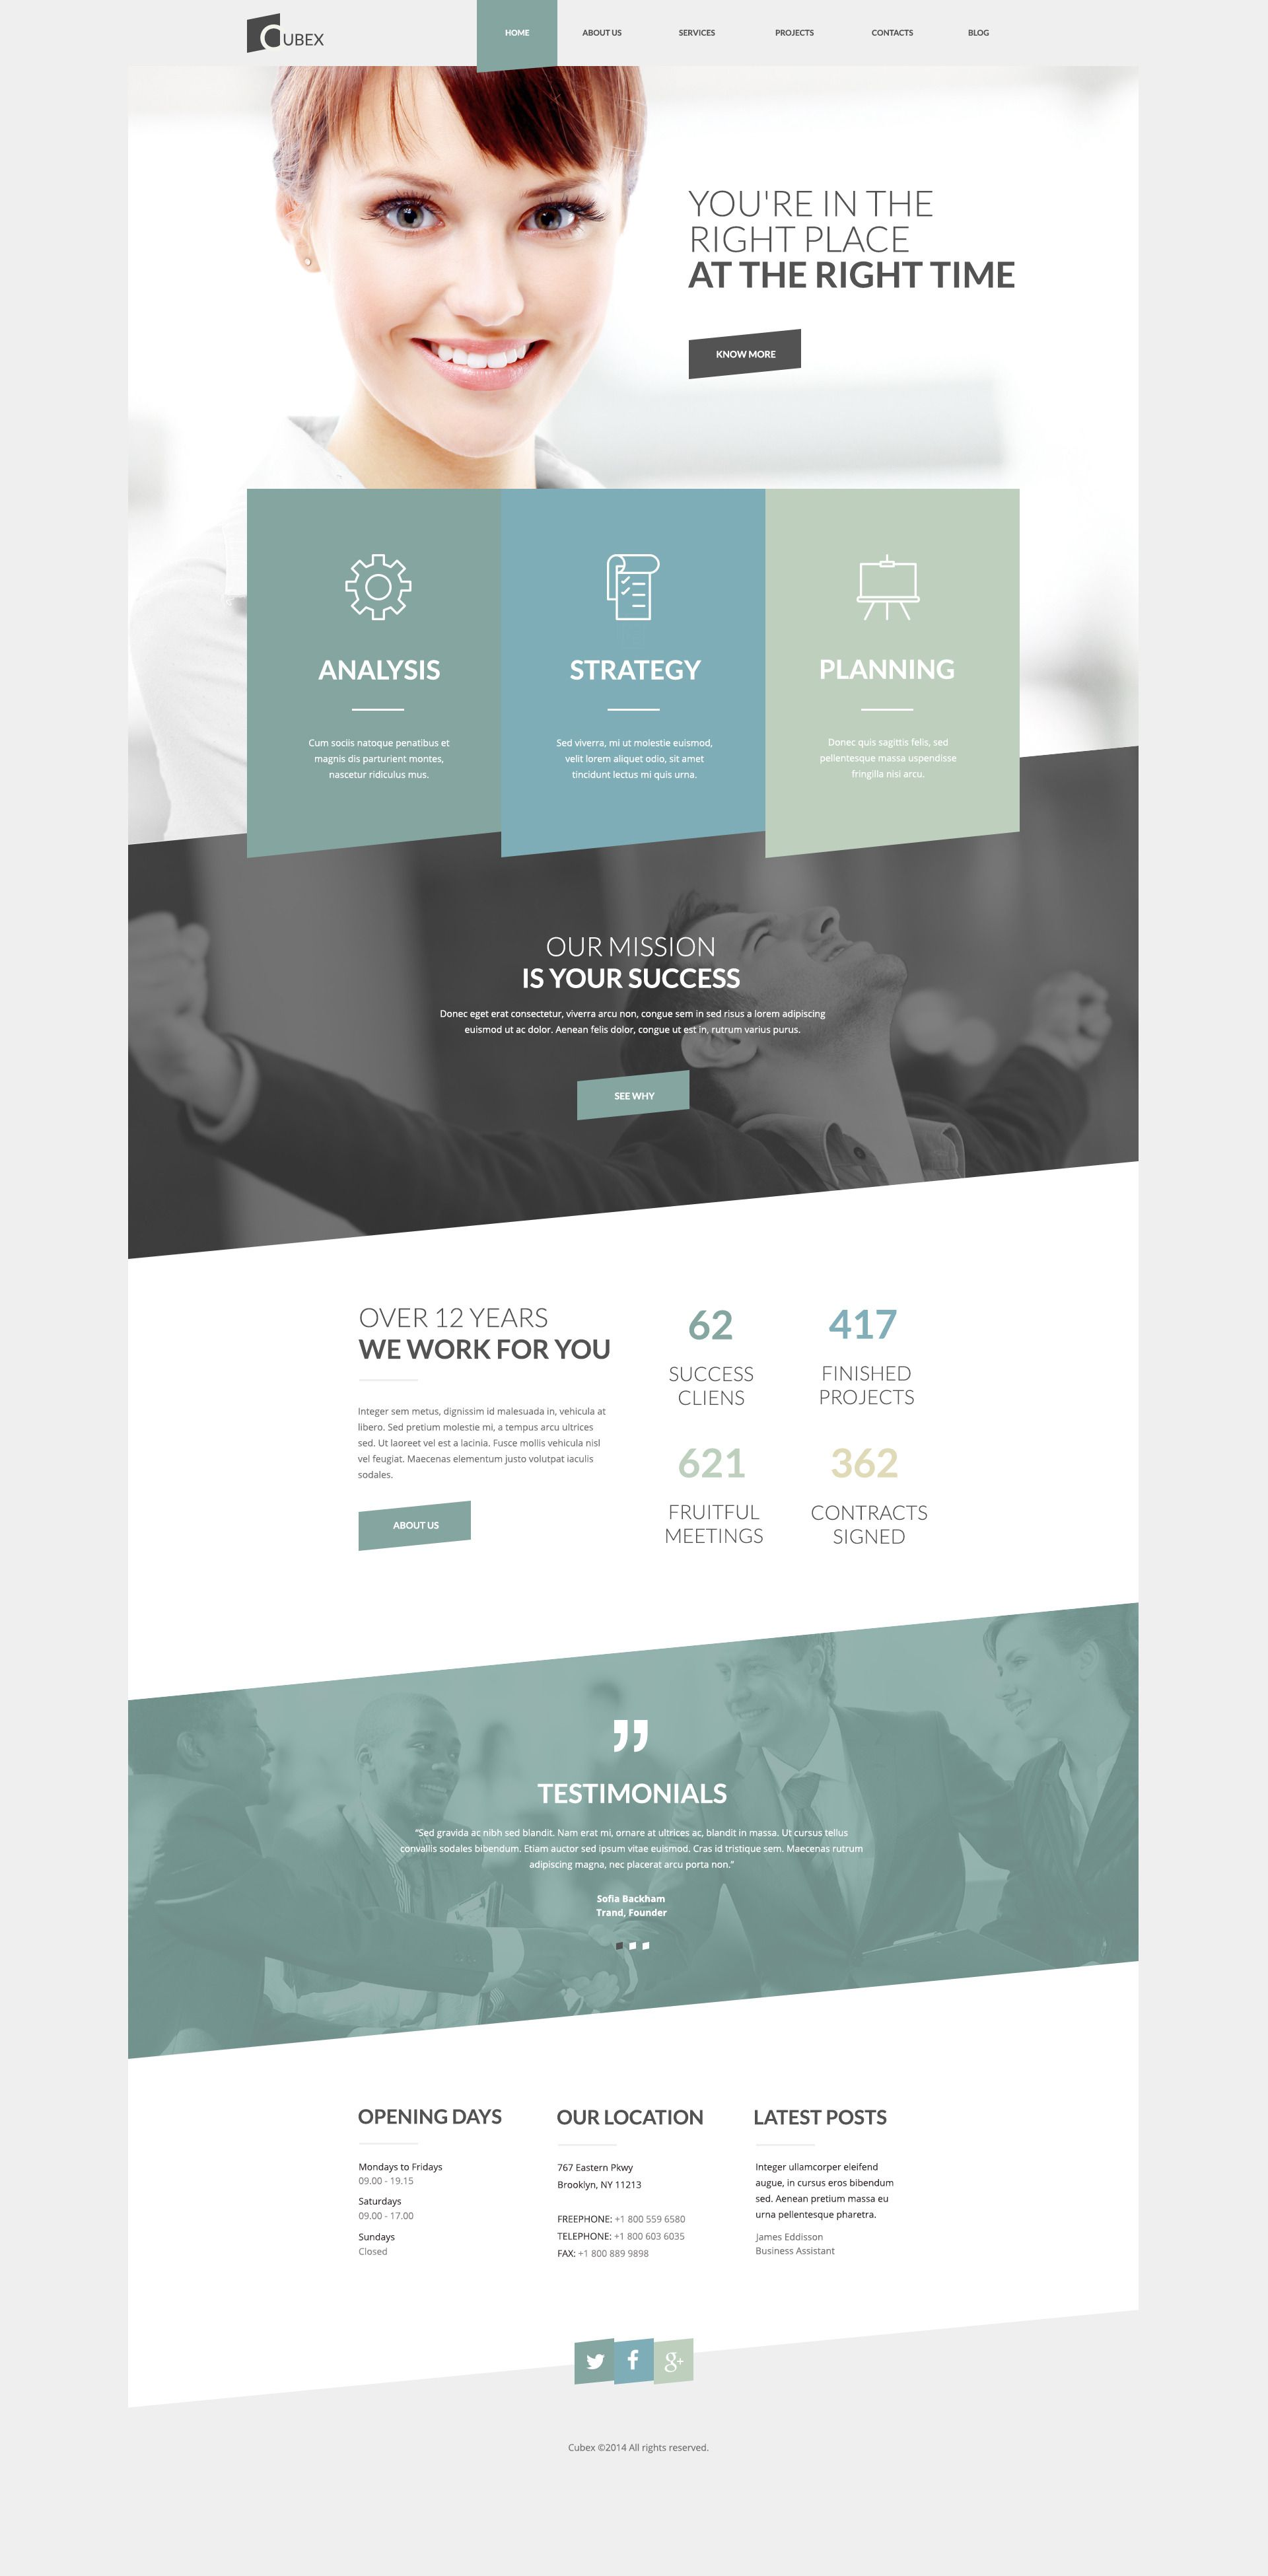 15 Inspirational Examples Of Minimal Clean Web Design Clean Web Design Web Development Design Minimal Web Design